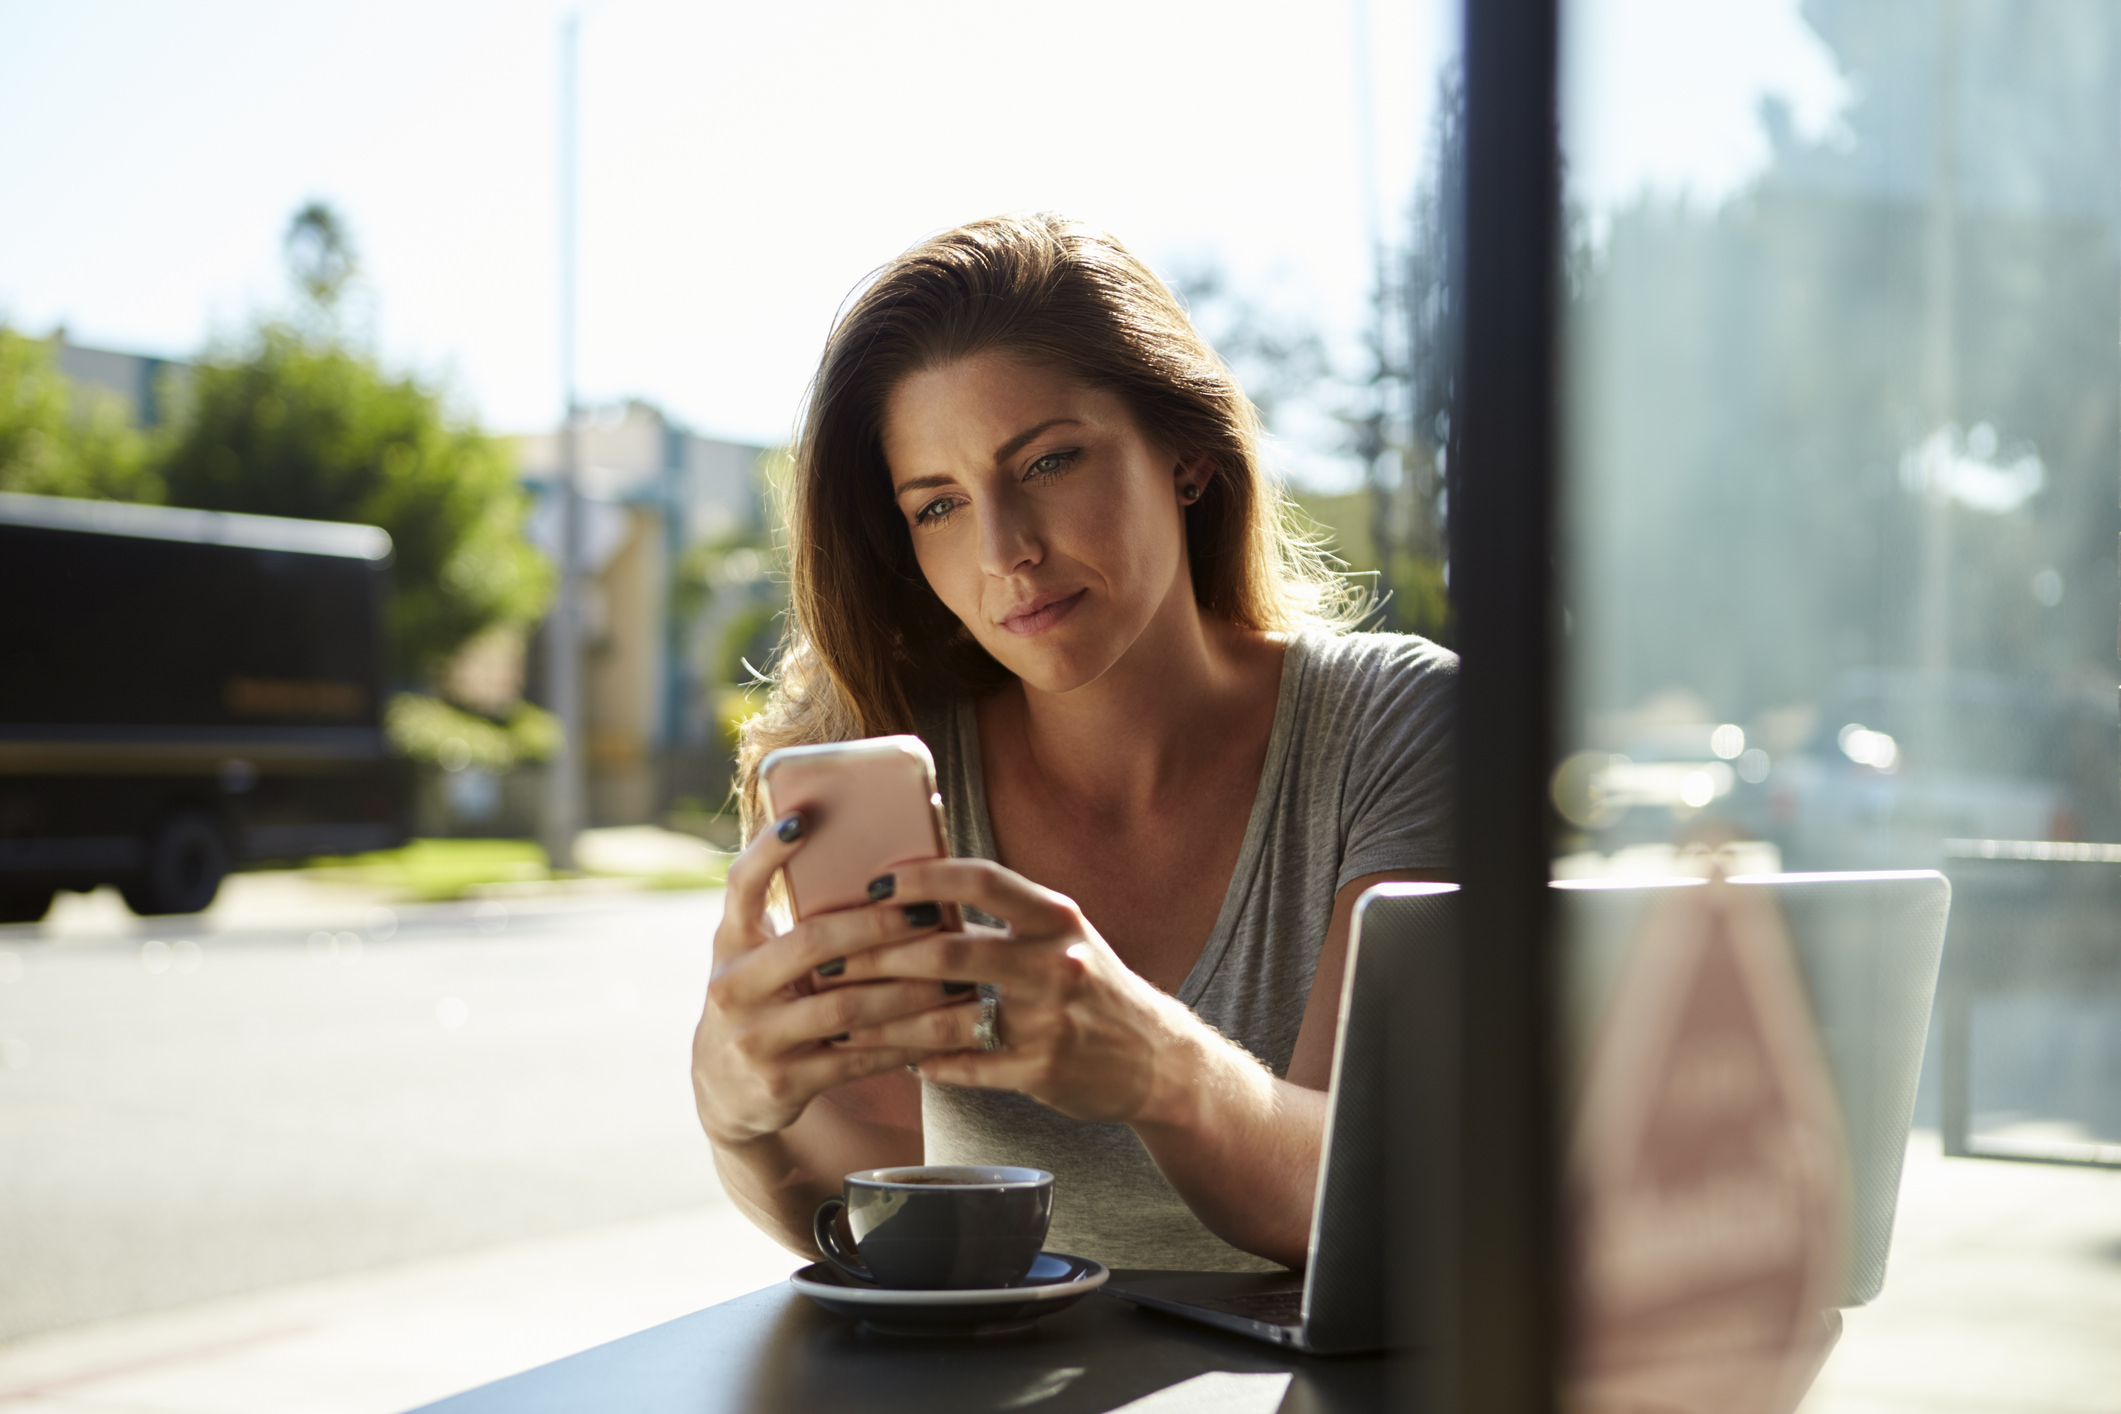 Woman using an app on her phone. Apps are a great way to reduce stress and promote mindfulness at work.